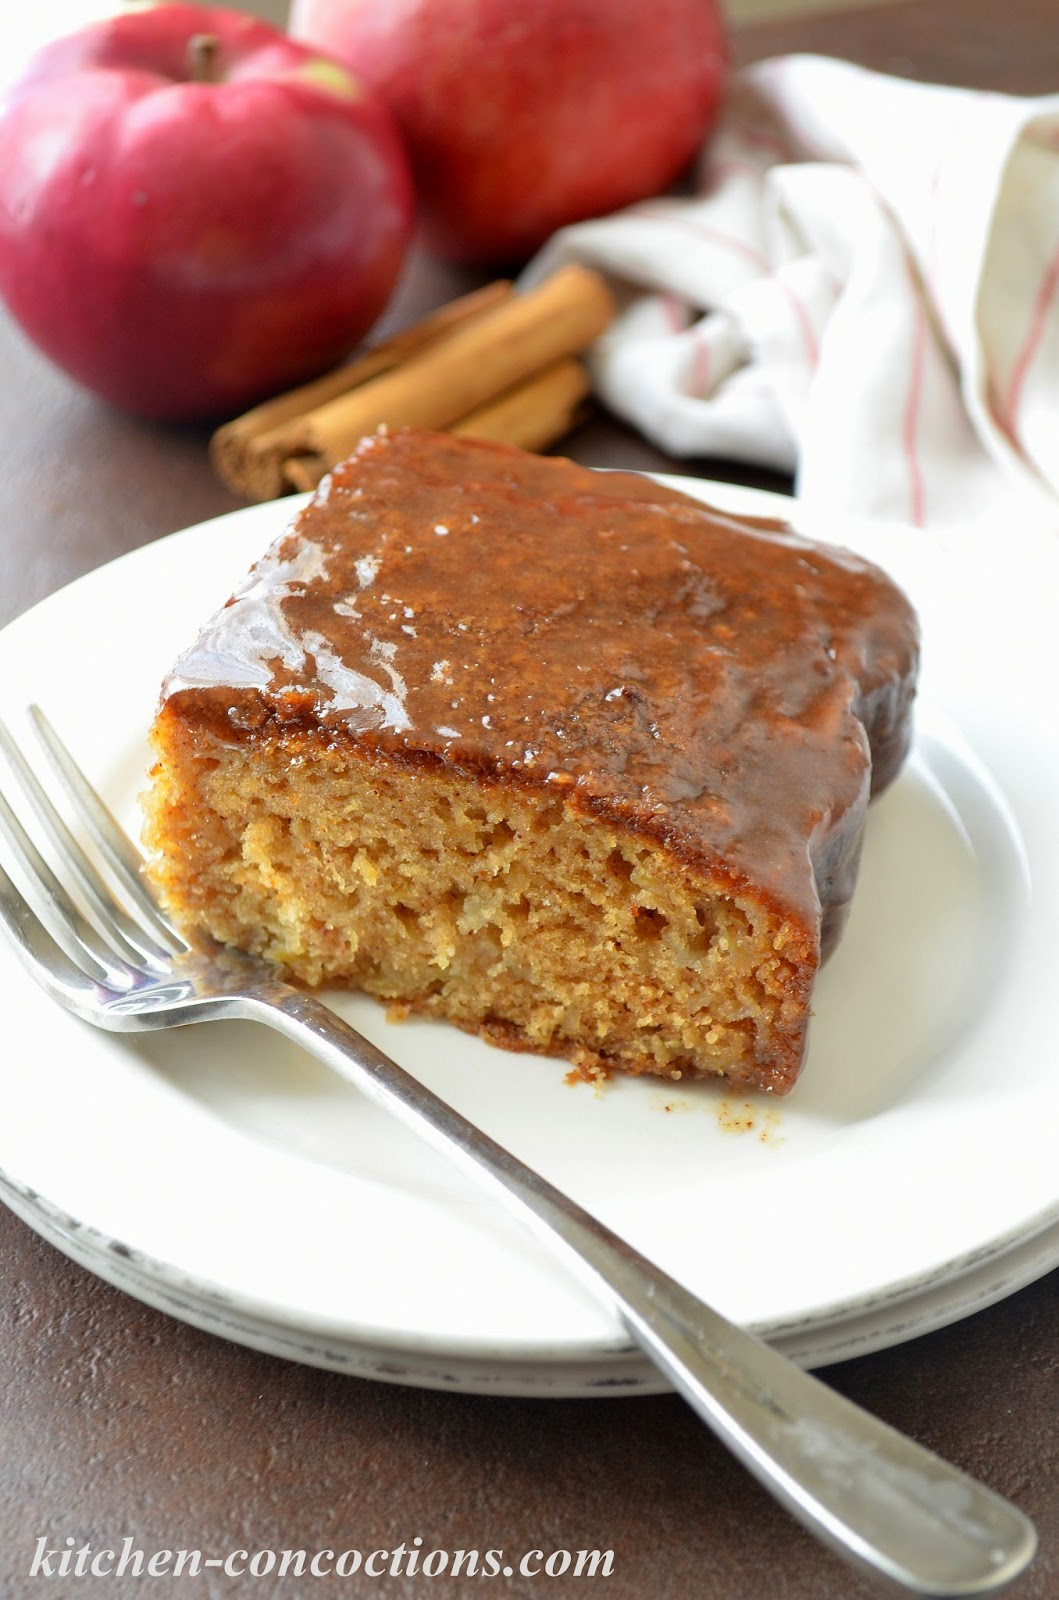 Kitchen Concoctions: Apple Cake with Brown Sugar Glaze